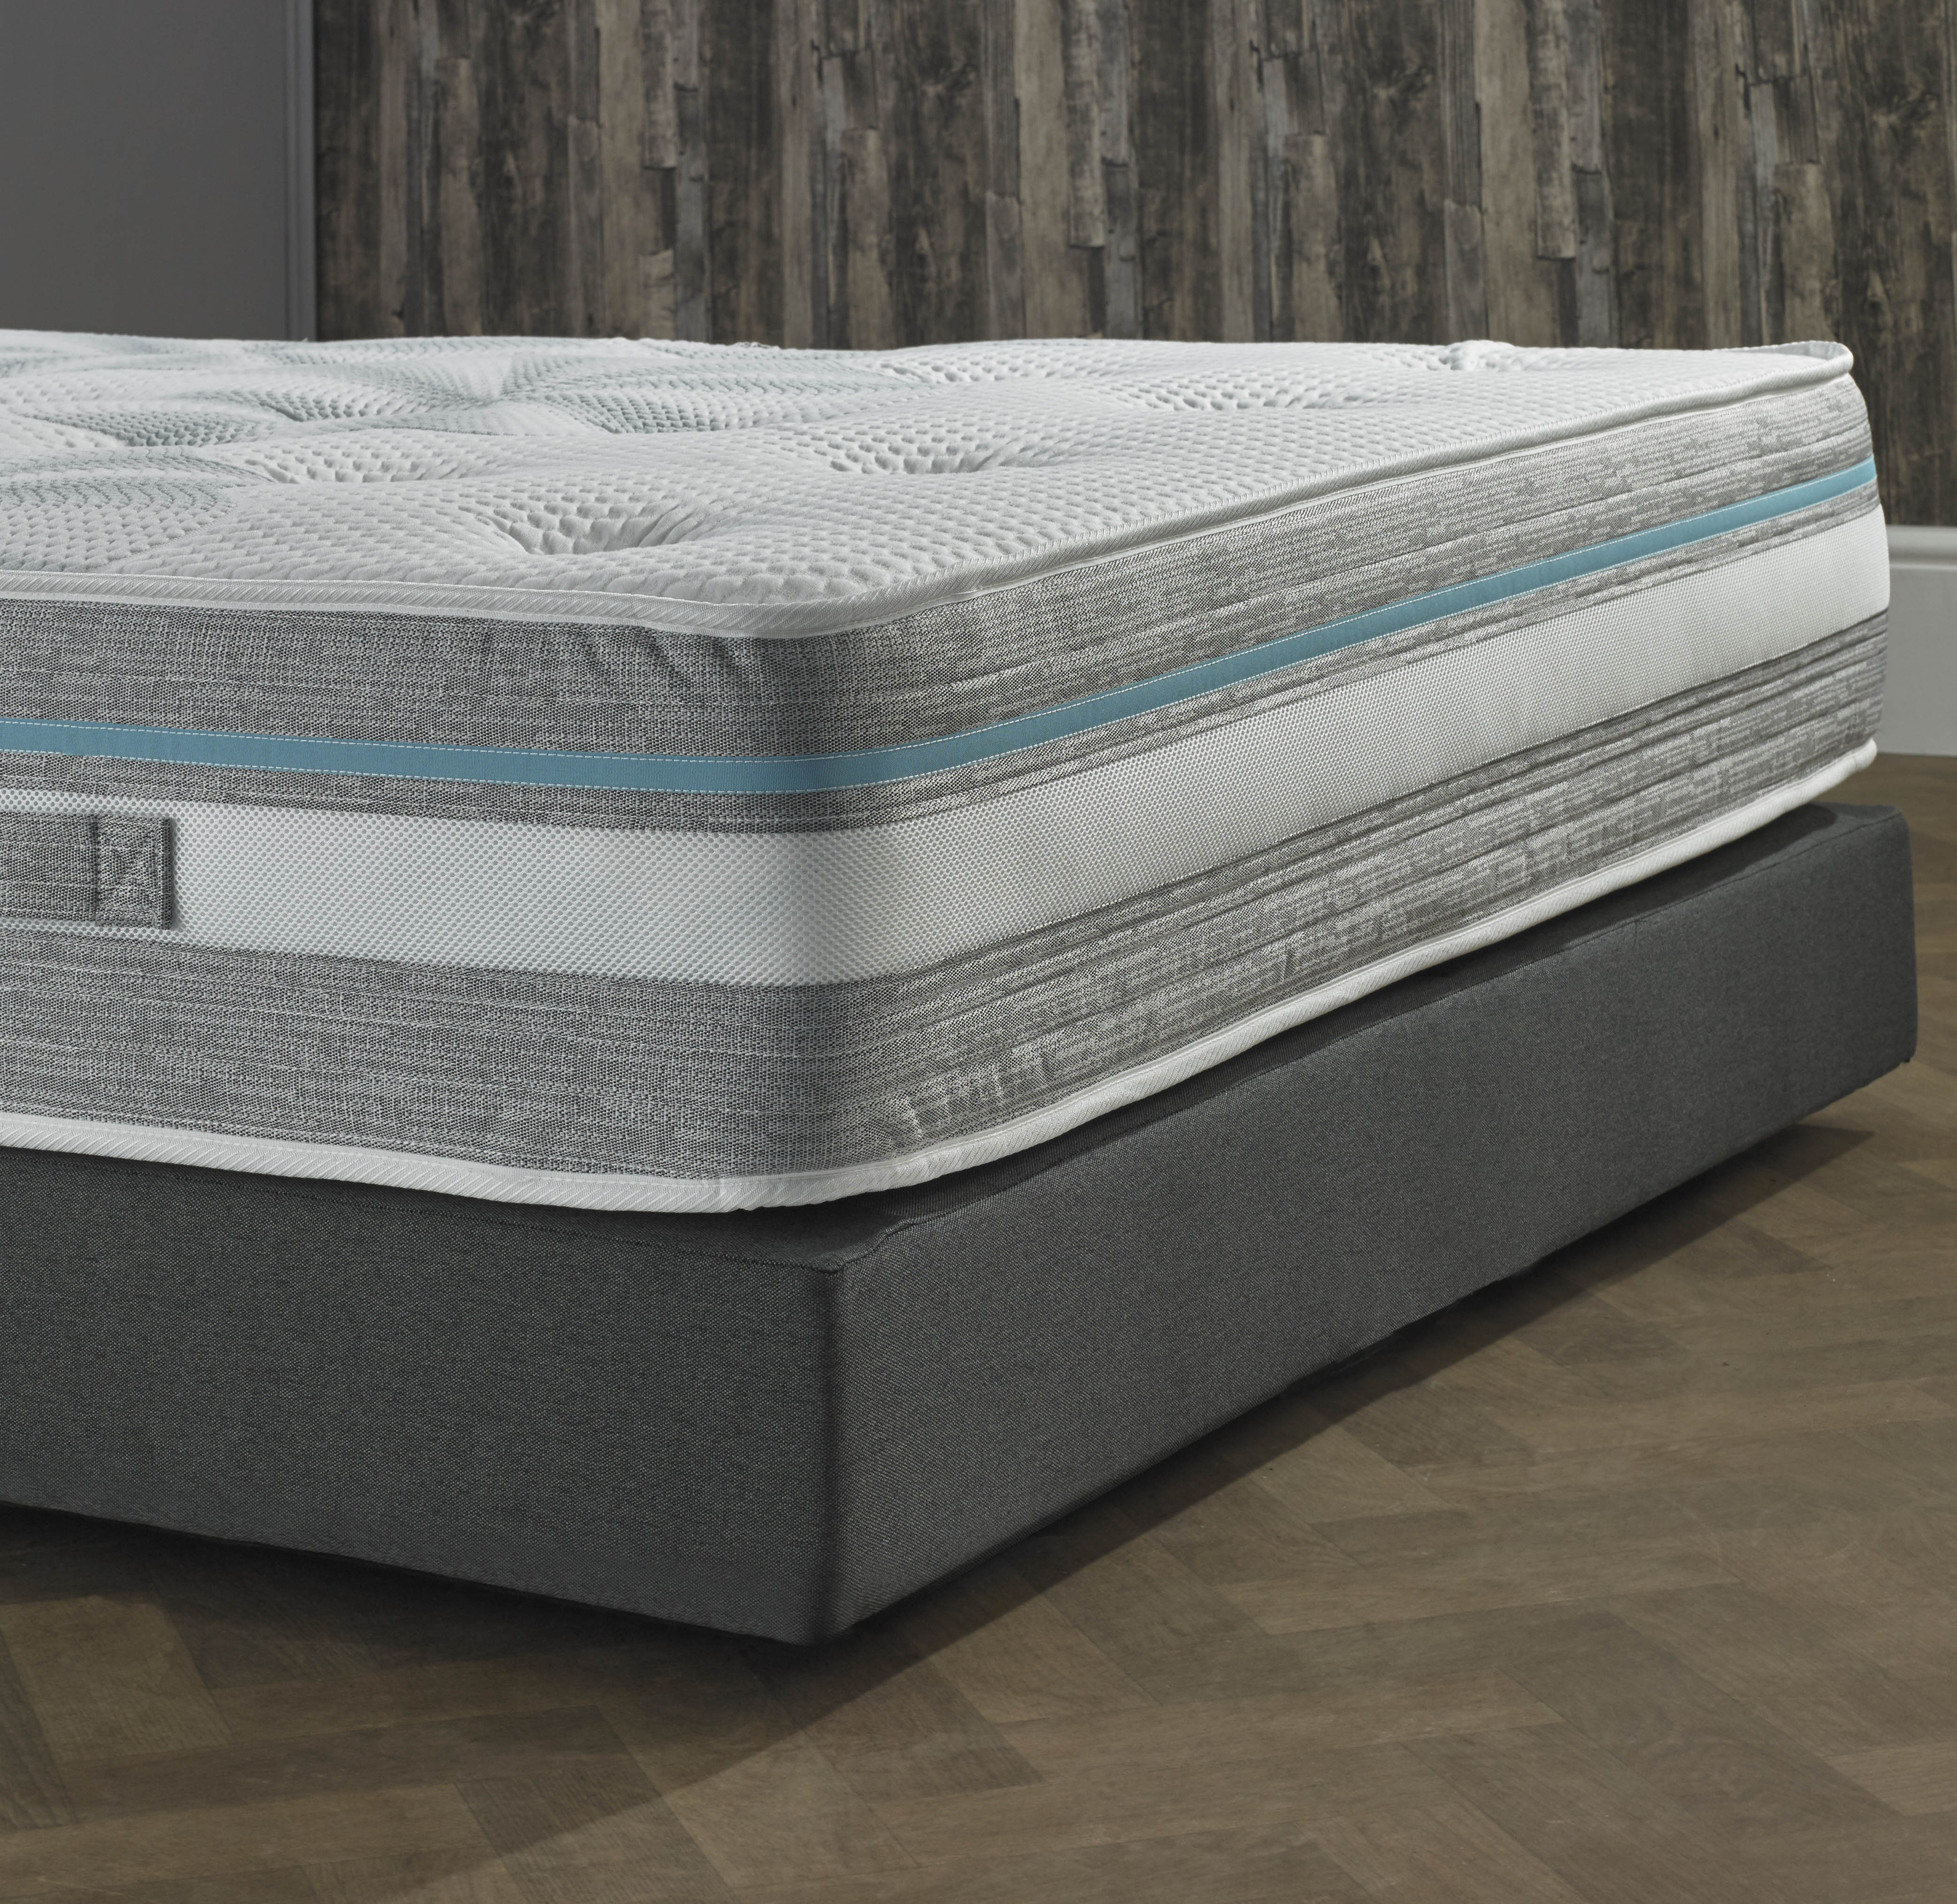 Beds Co Uk Premium Hybrid Individual Encapsulated Geltech Pocket Spring Mattress Beds Co Uk